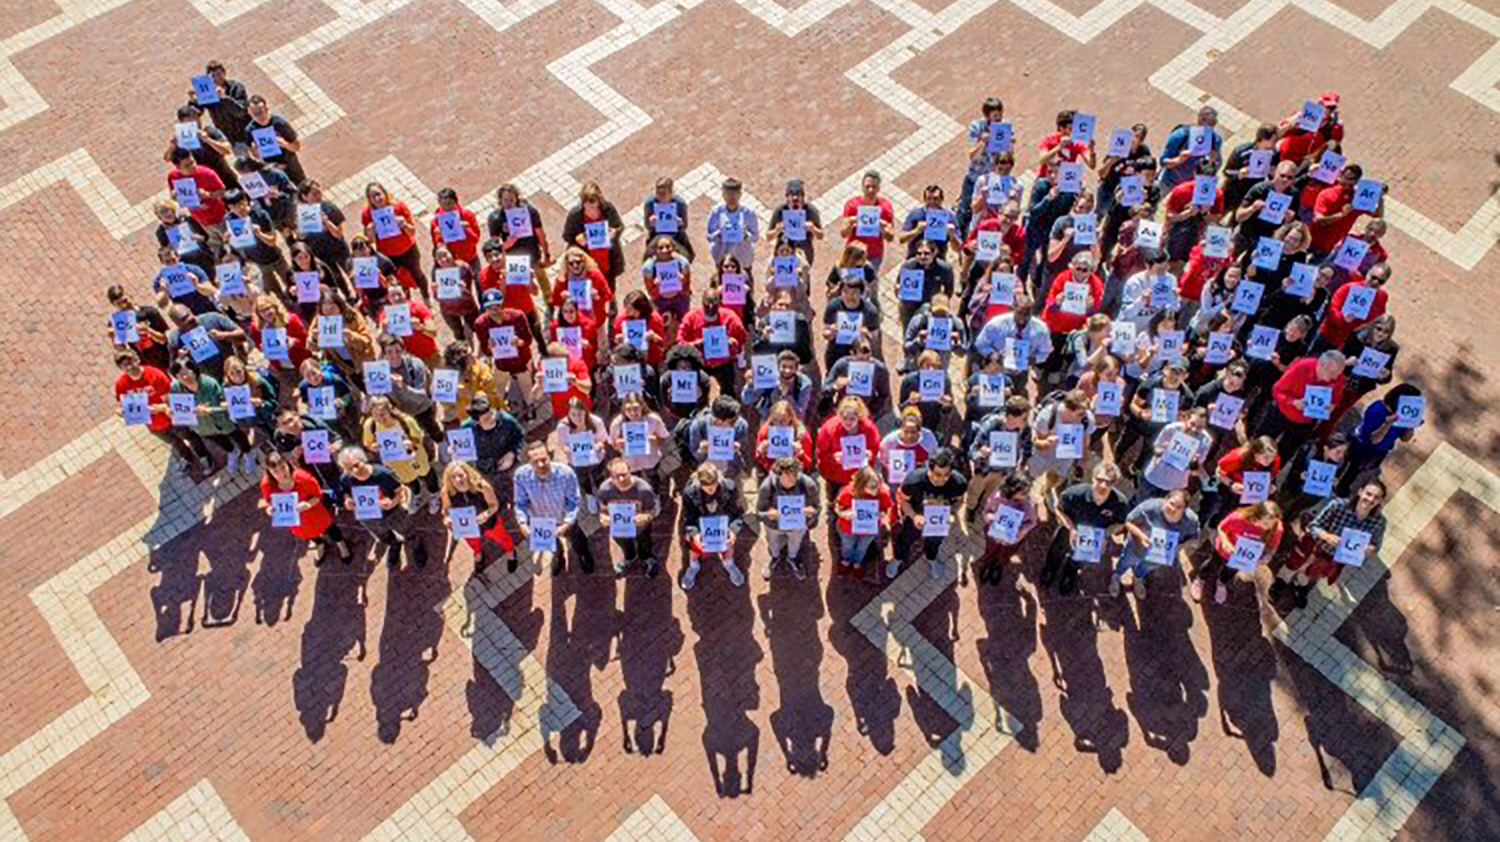 Aerial photo of the chemistry department members holding signs for chemistry symbols